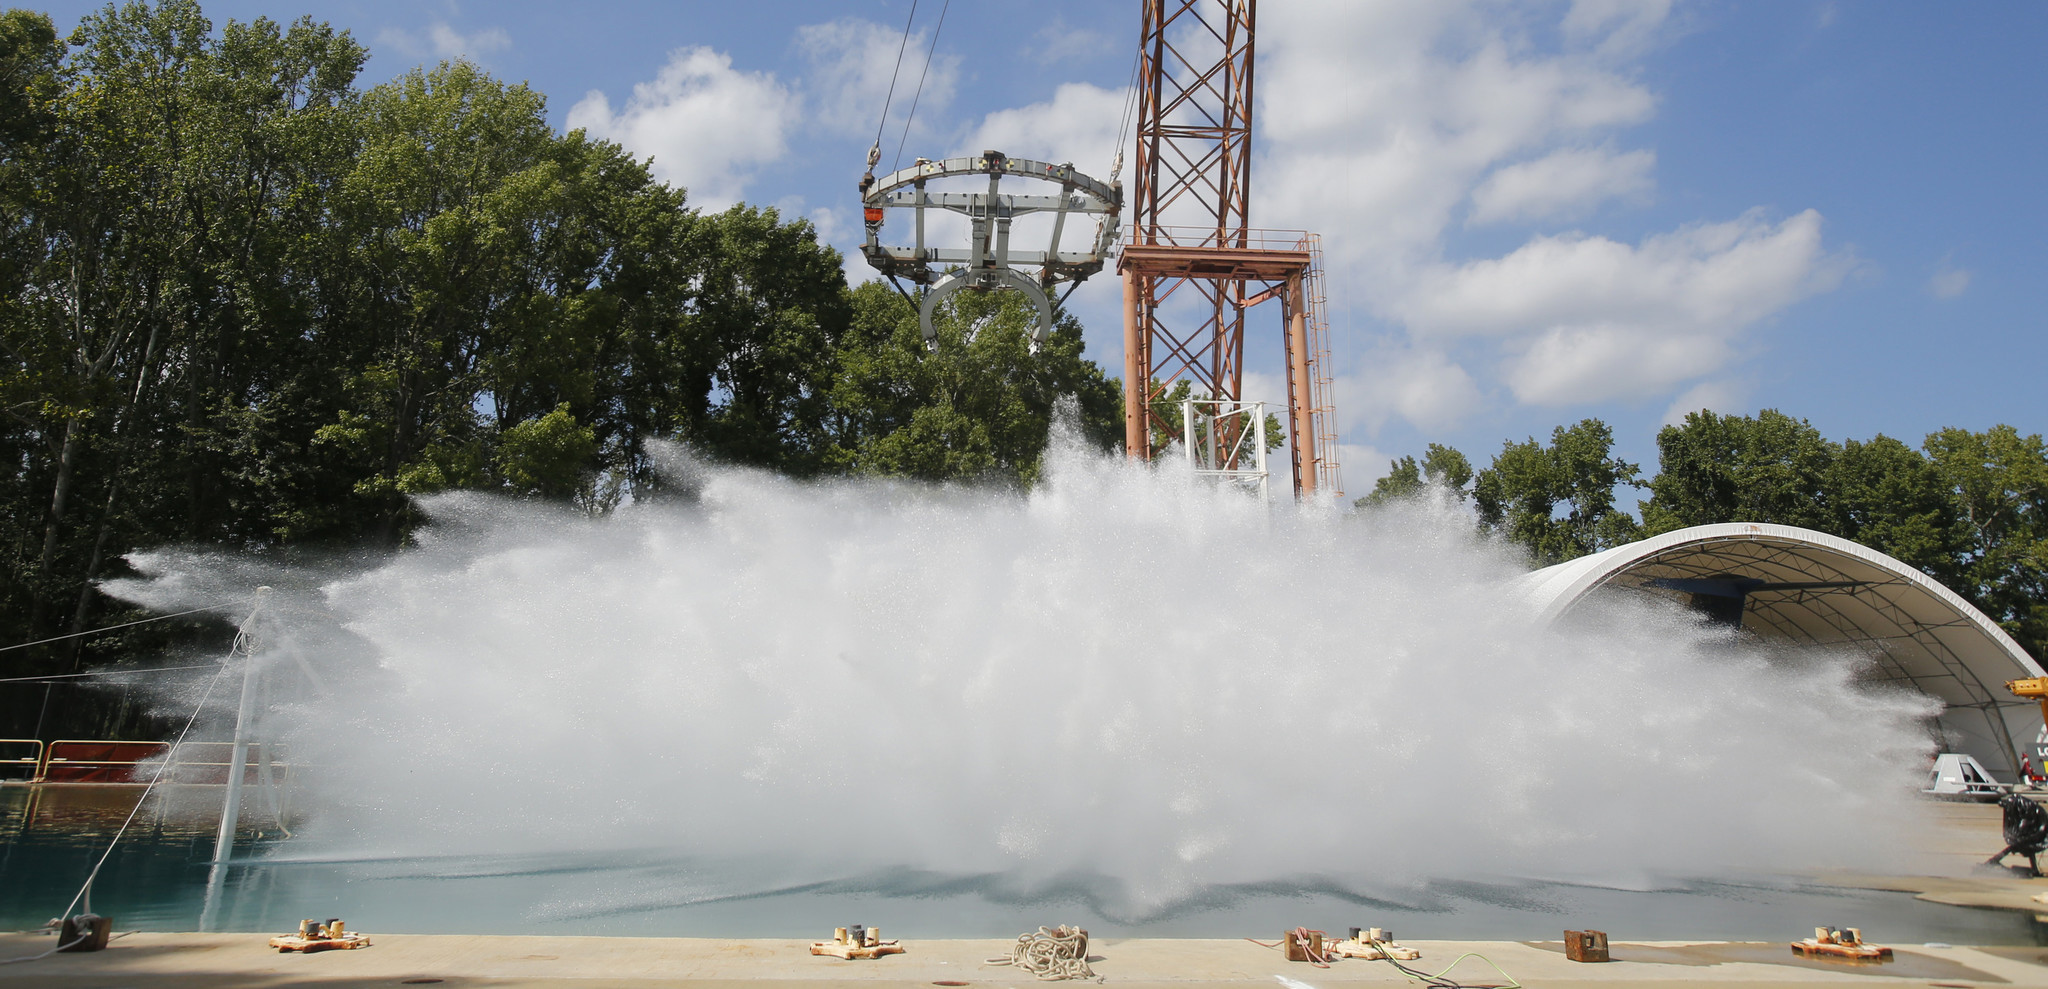 Spacecraft cannonball: NASA conducts splashdown tests for ...